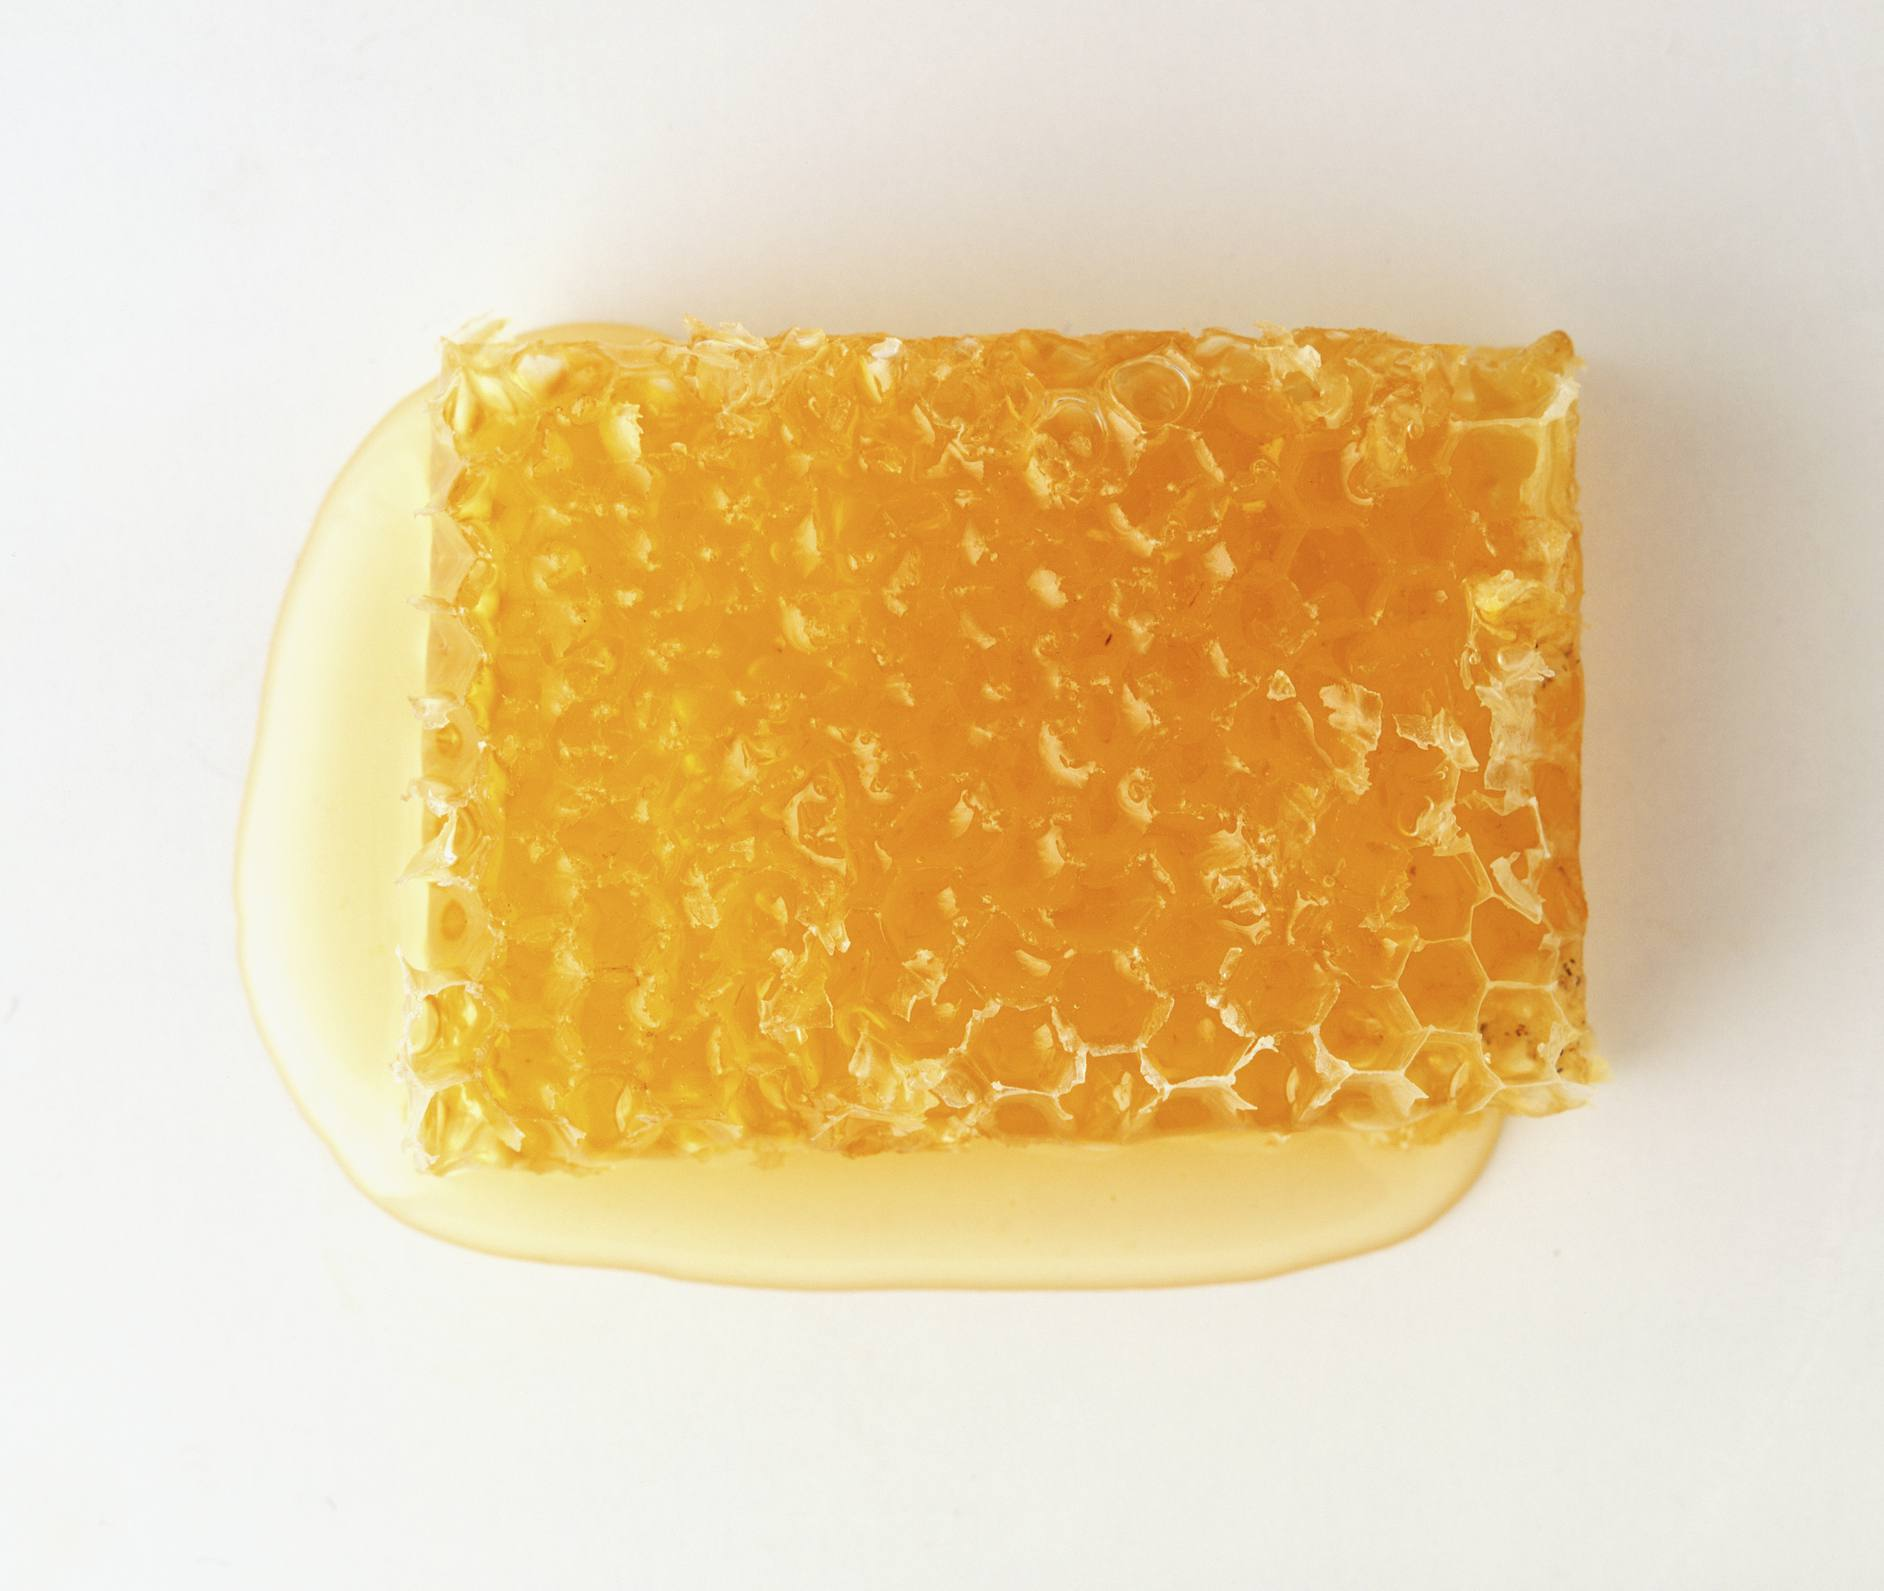 A chunk of beeswax